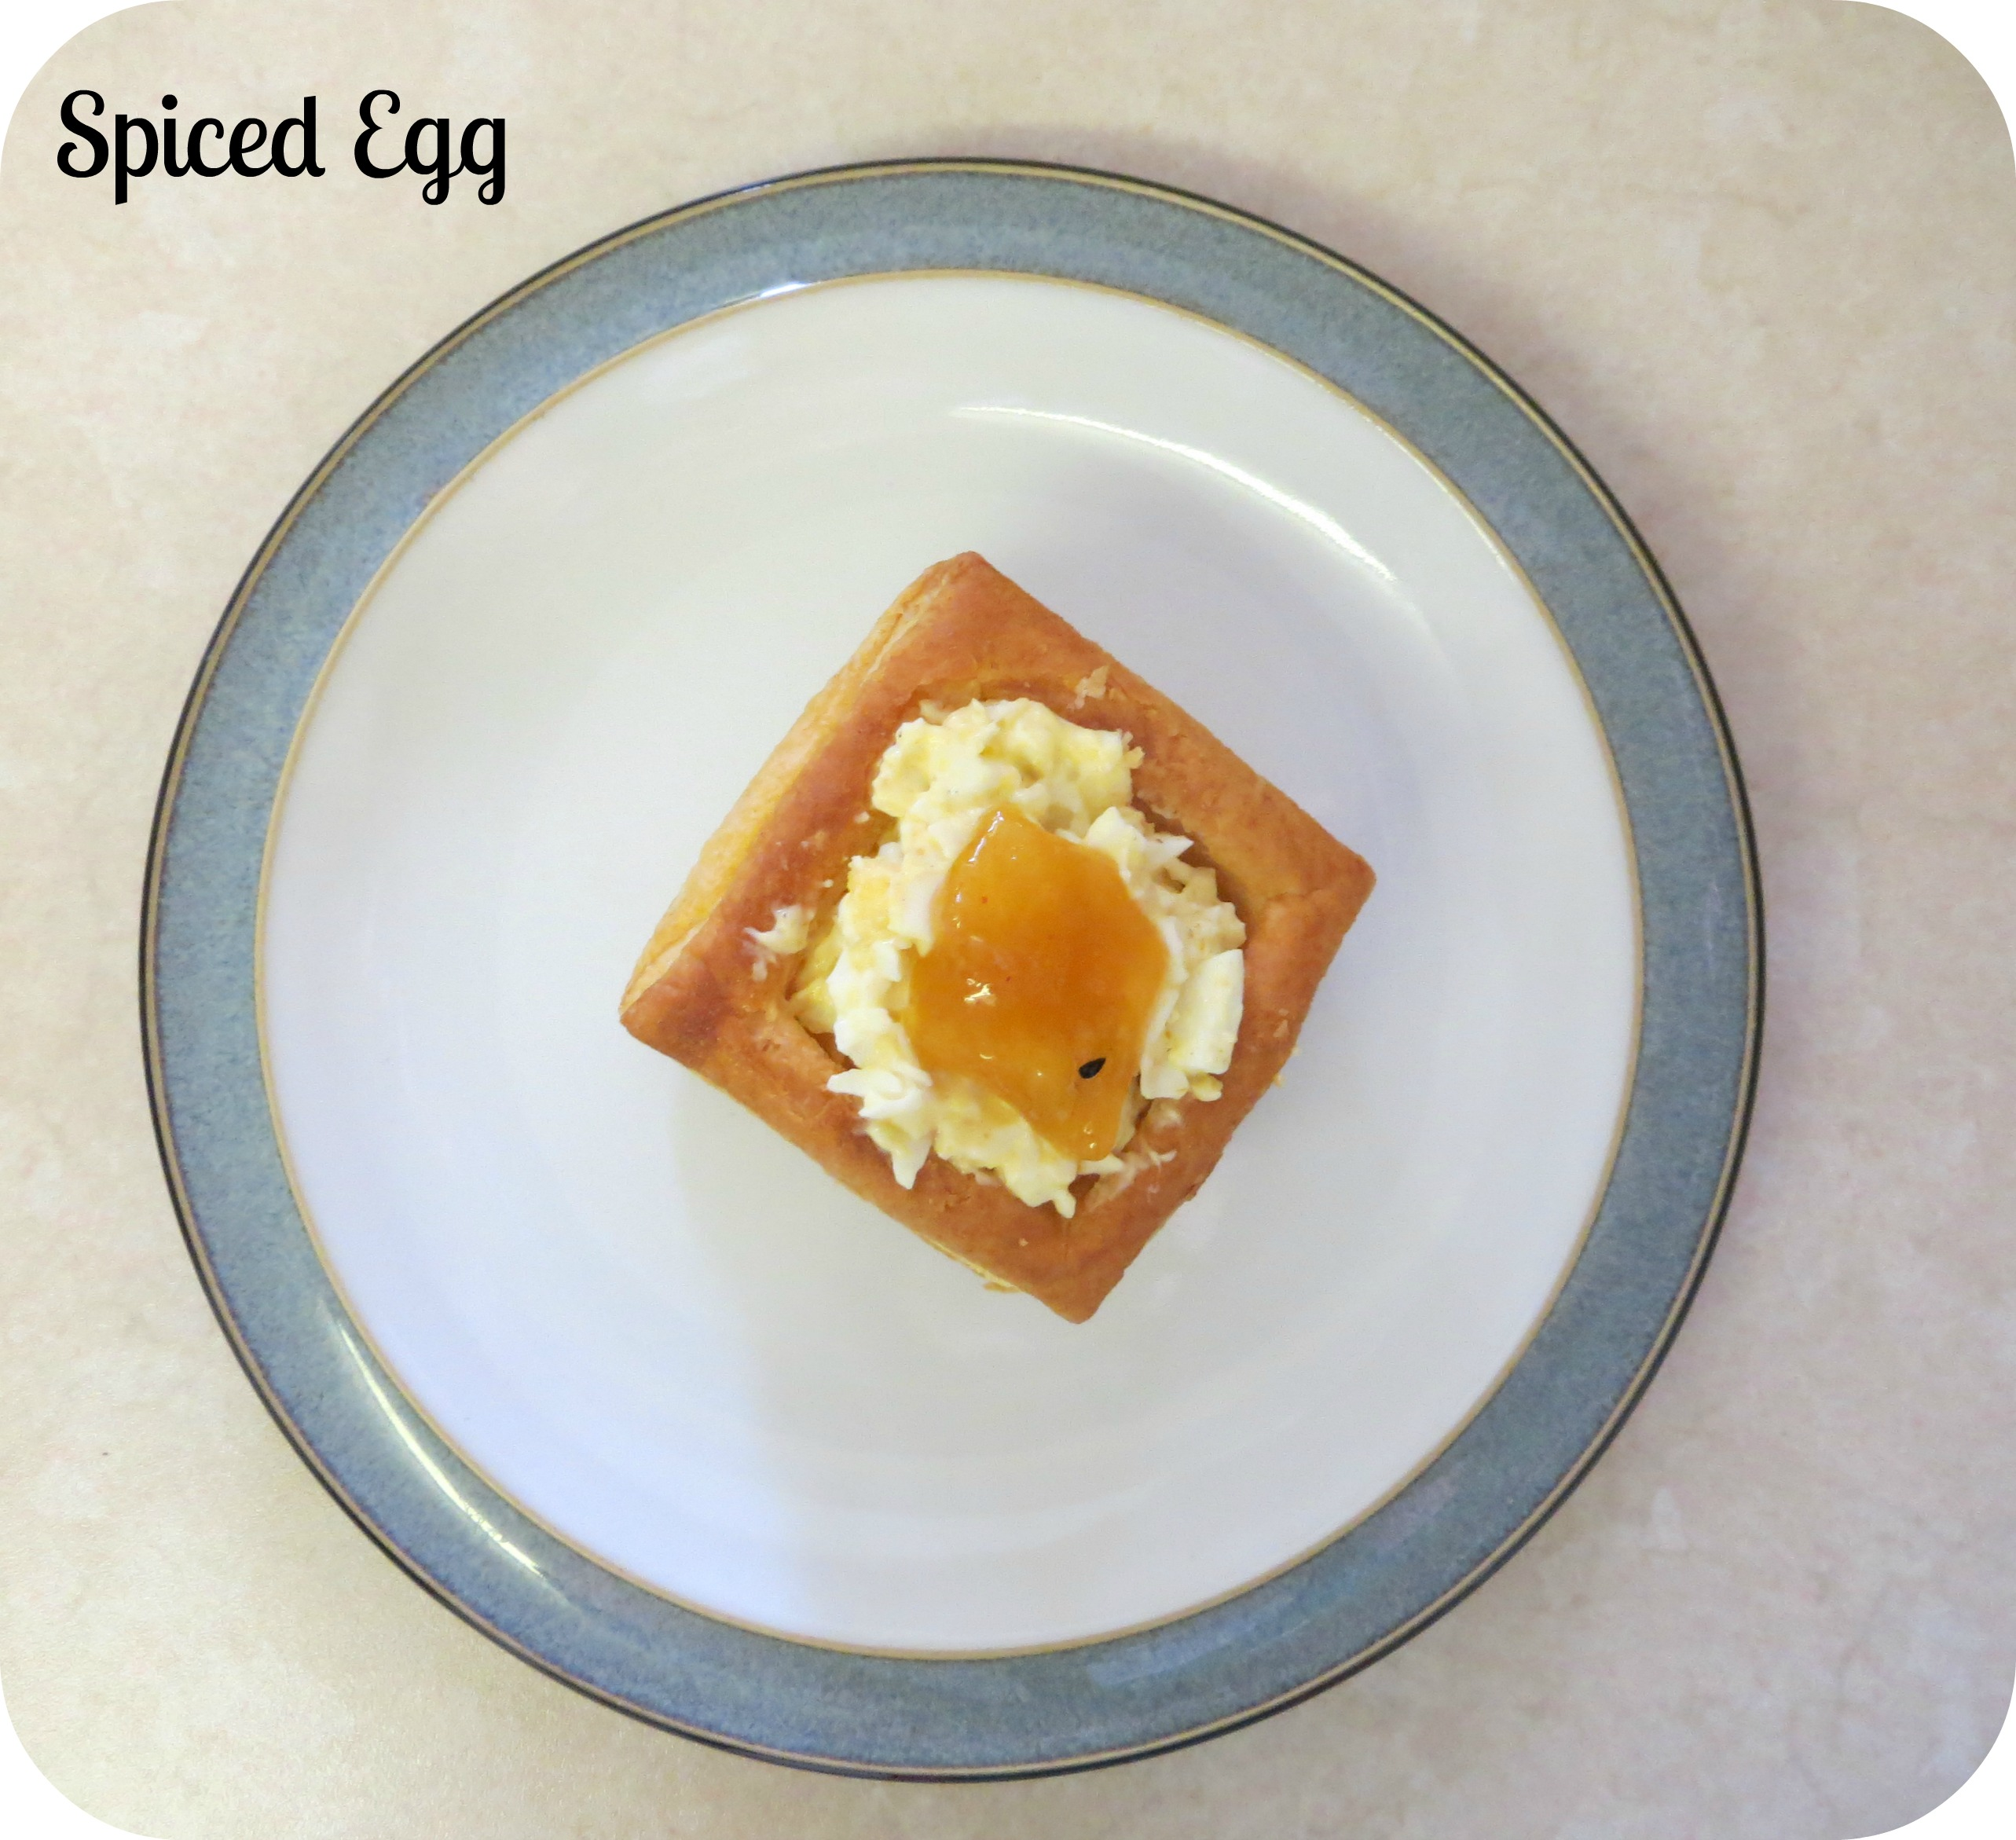 Spiced Egg